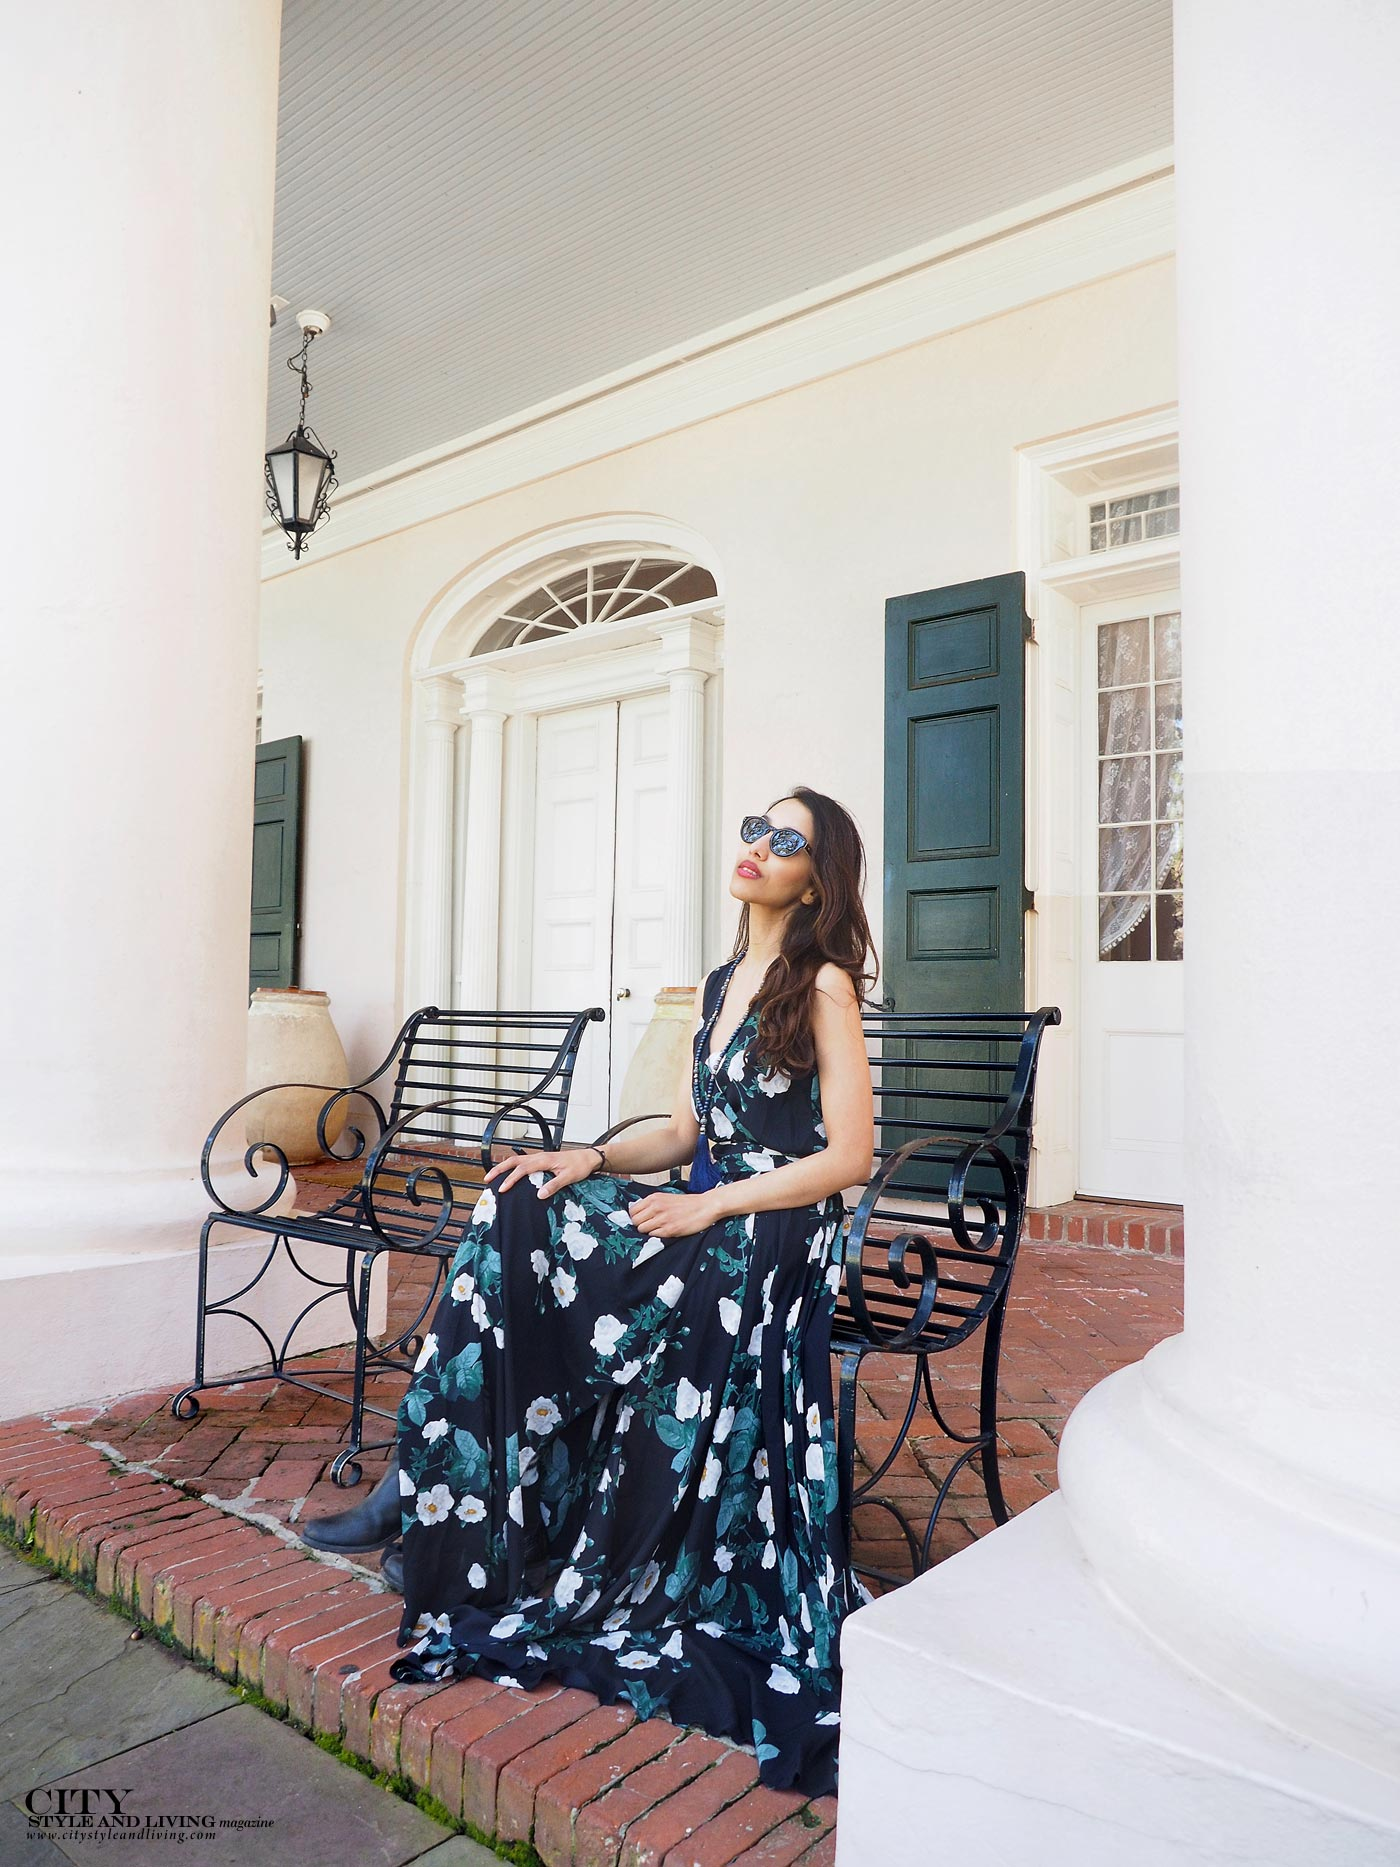 City style and living magazine The Editors Notebook style fashion blogger Shivana Maharaj Oak Alley Plantation maxi dress sitting on porch